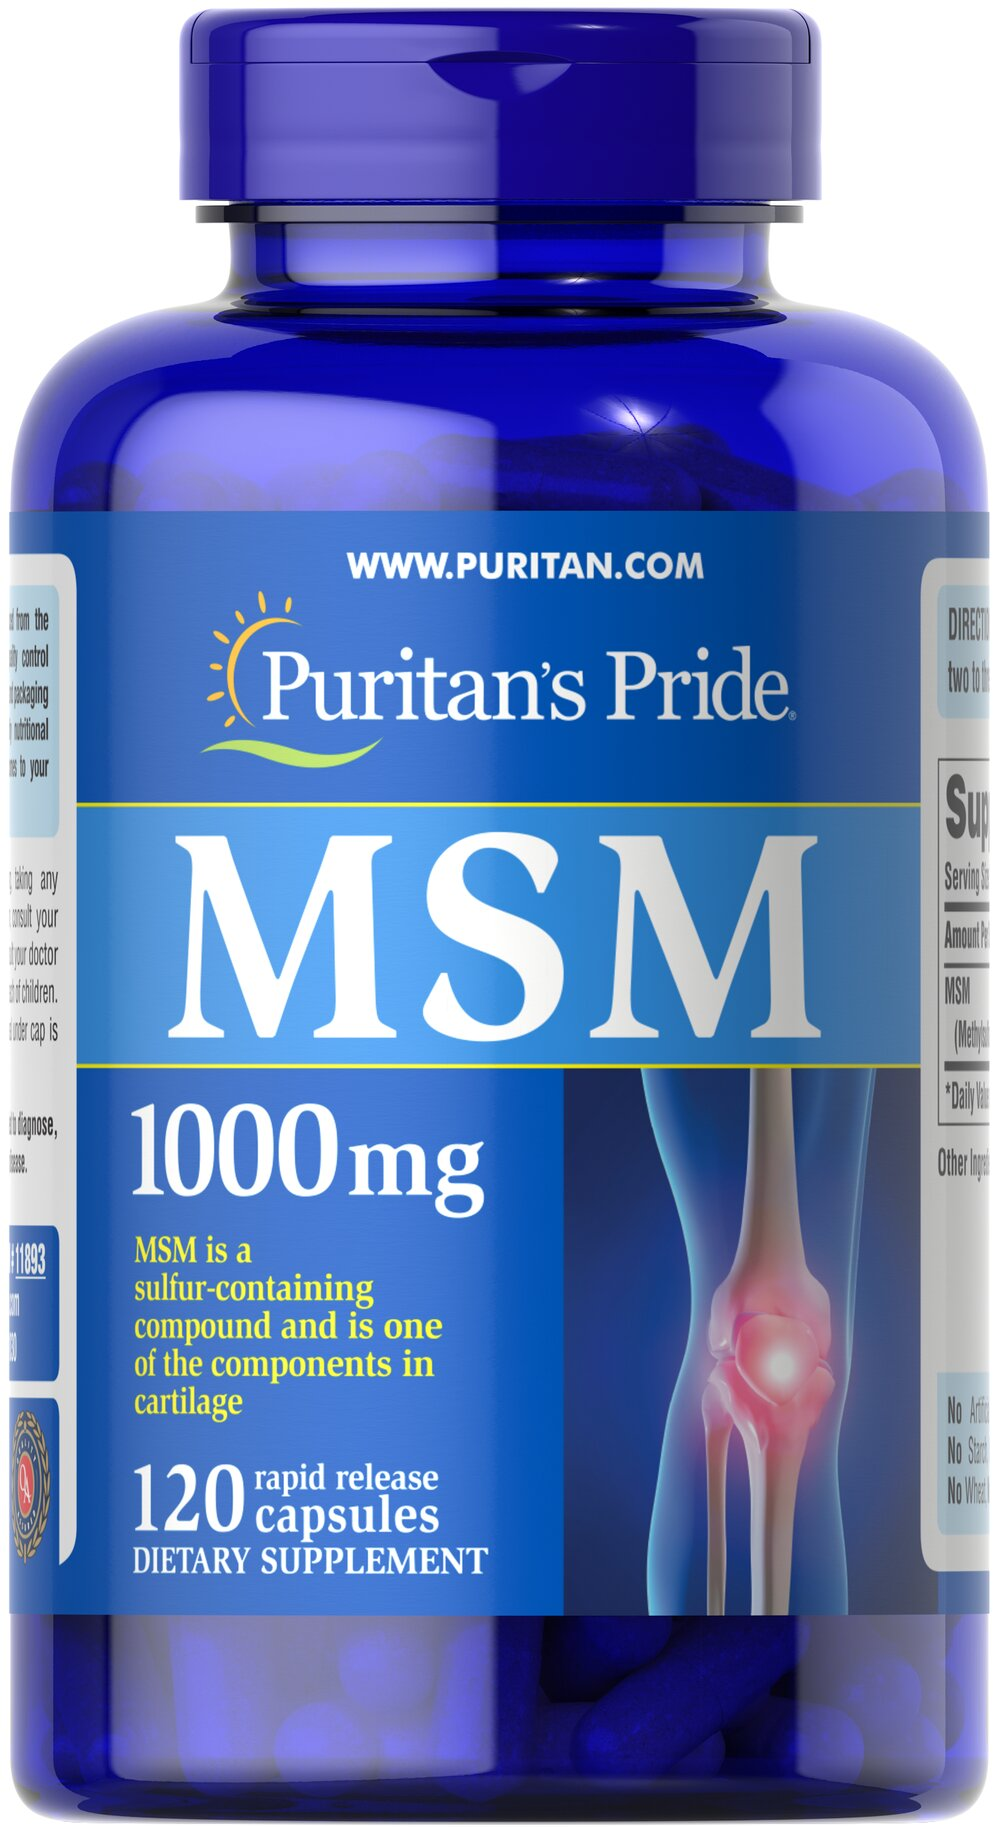 MSM 1000 mg <p><strong>Methylsulfonylmethane (MSM)</strong> is a natural source of sulfur, one of the major building blocks of glycosaminoglycans.** Glycosaminoglycans are key structural components in cartilage and play an important role in the maintenance of joint cartilage. ** </p> 120 Capsules 1000 mg $11.19